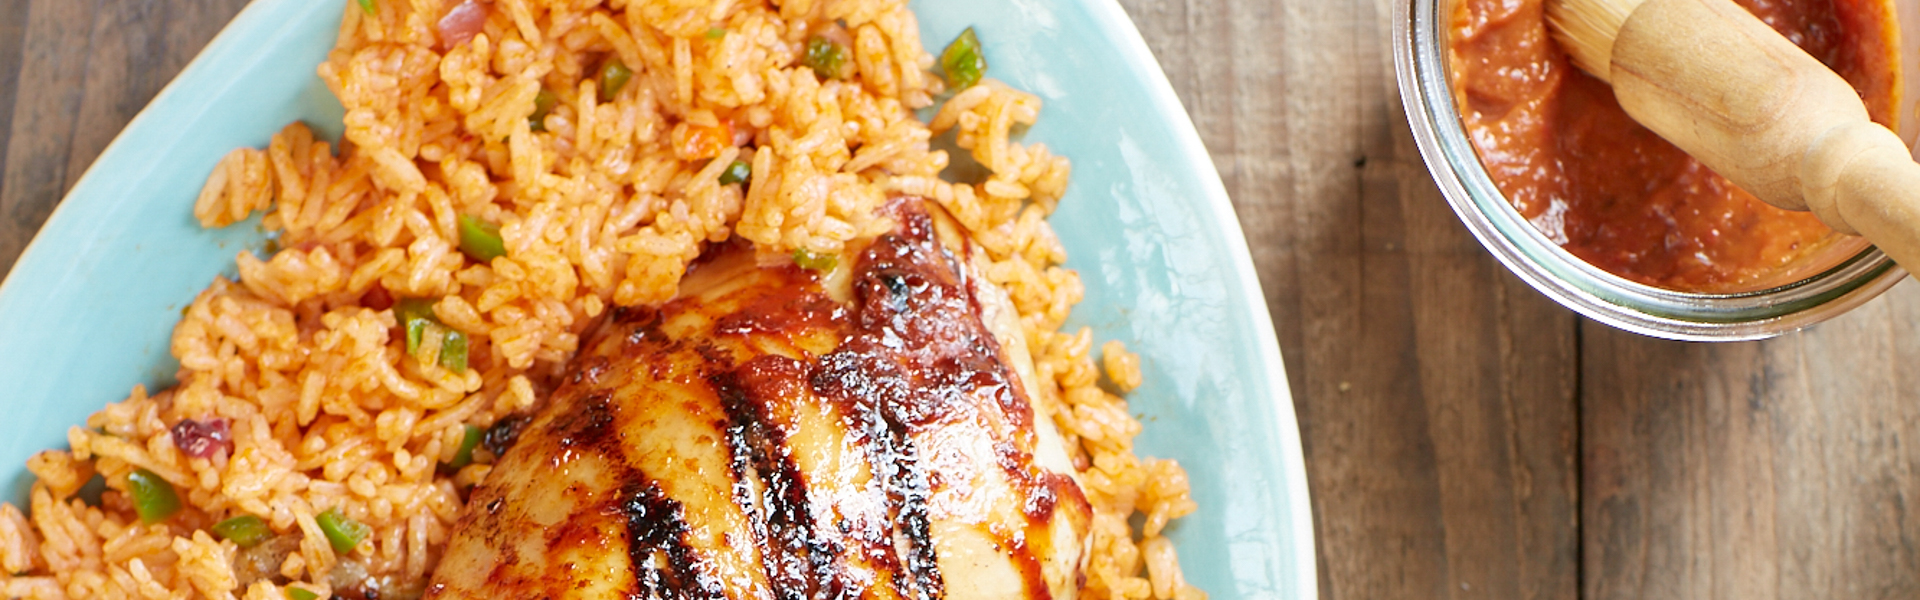 <p>Spicy, savory, and smoky, this chipotle barbecue glaze gives grilled chicken a new dimension. Prunes deepen the caramelization of the chicken, making it hard not to reach for seconds. Extra glaze can be used on grilled or roasted vegetables and refrigerated for up to 1 week.</p>